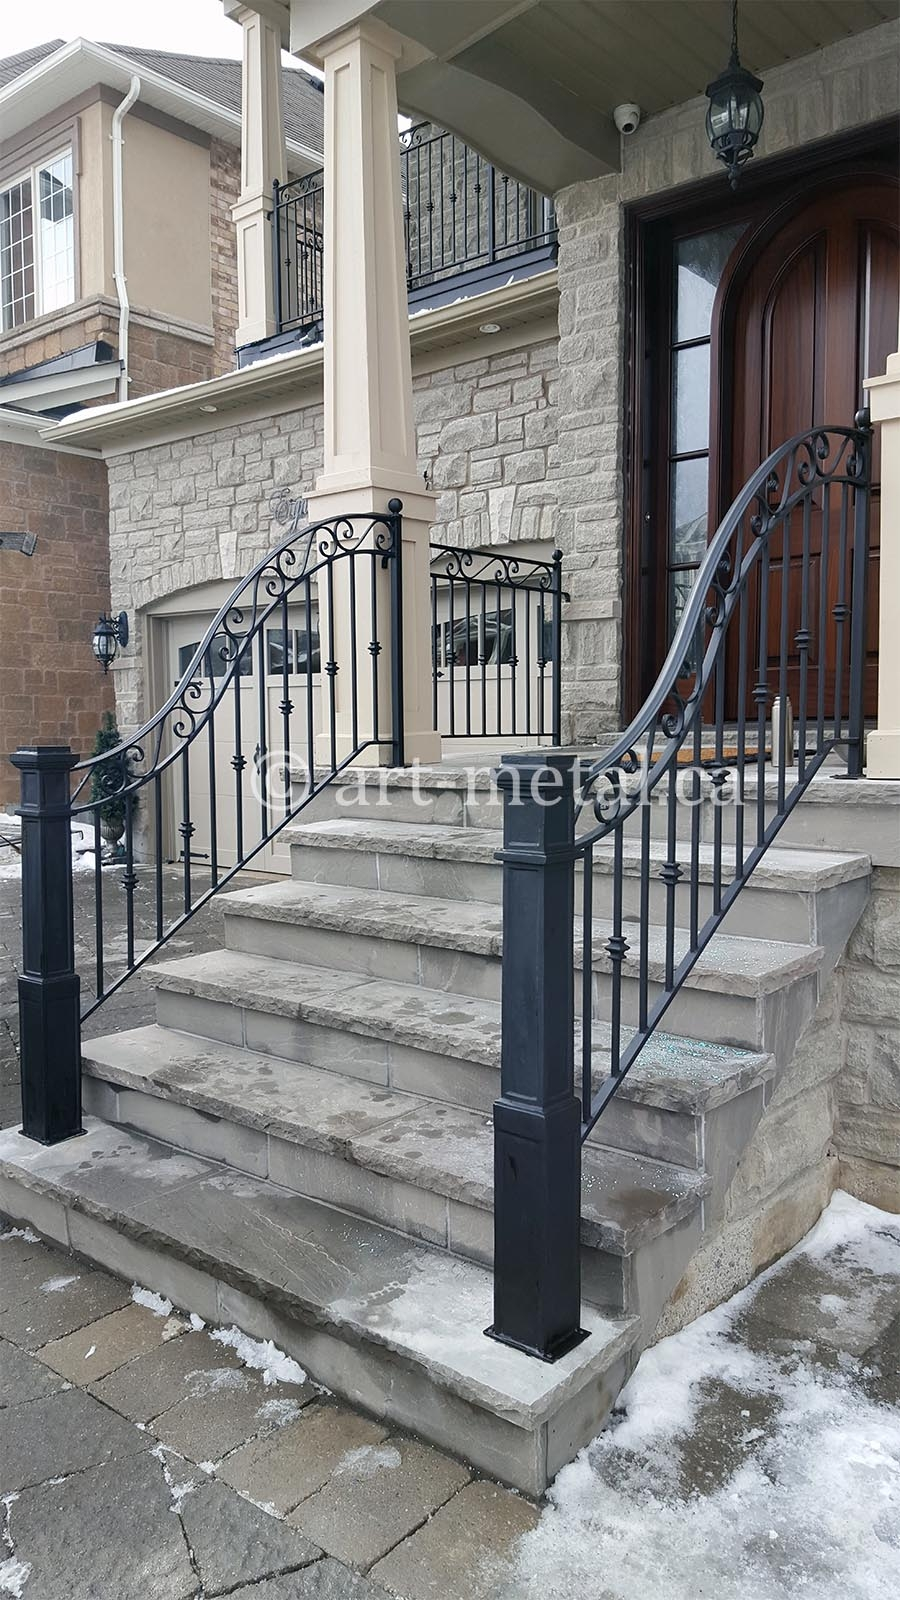 Best Exterior Wrought Iron Stair Railings You Can Get In Toronto | Wrought Iron Railings For Outside Steps